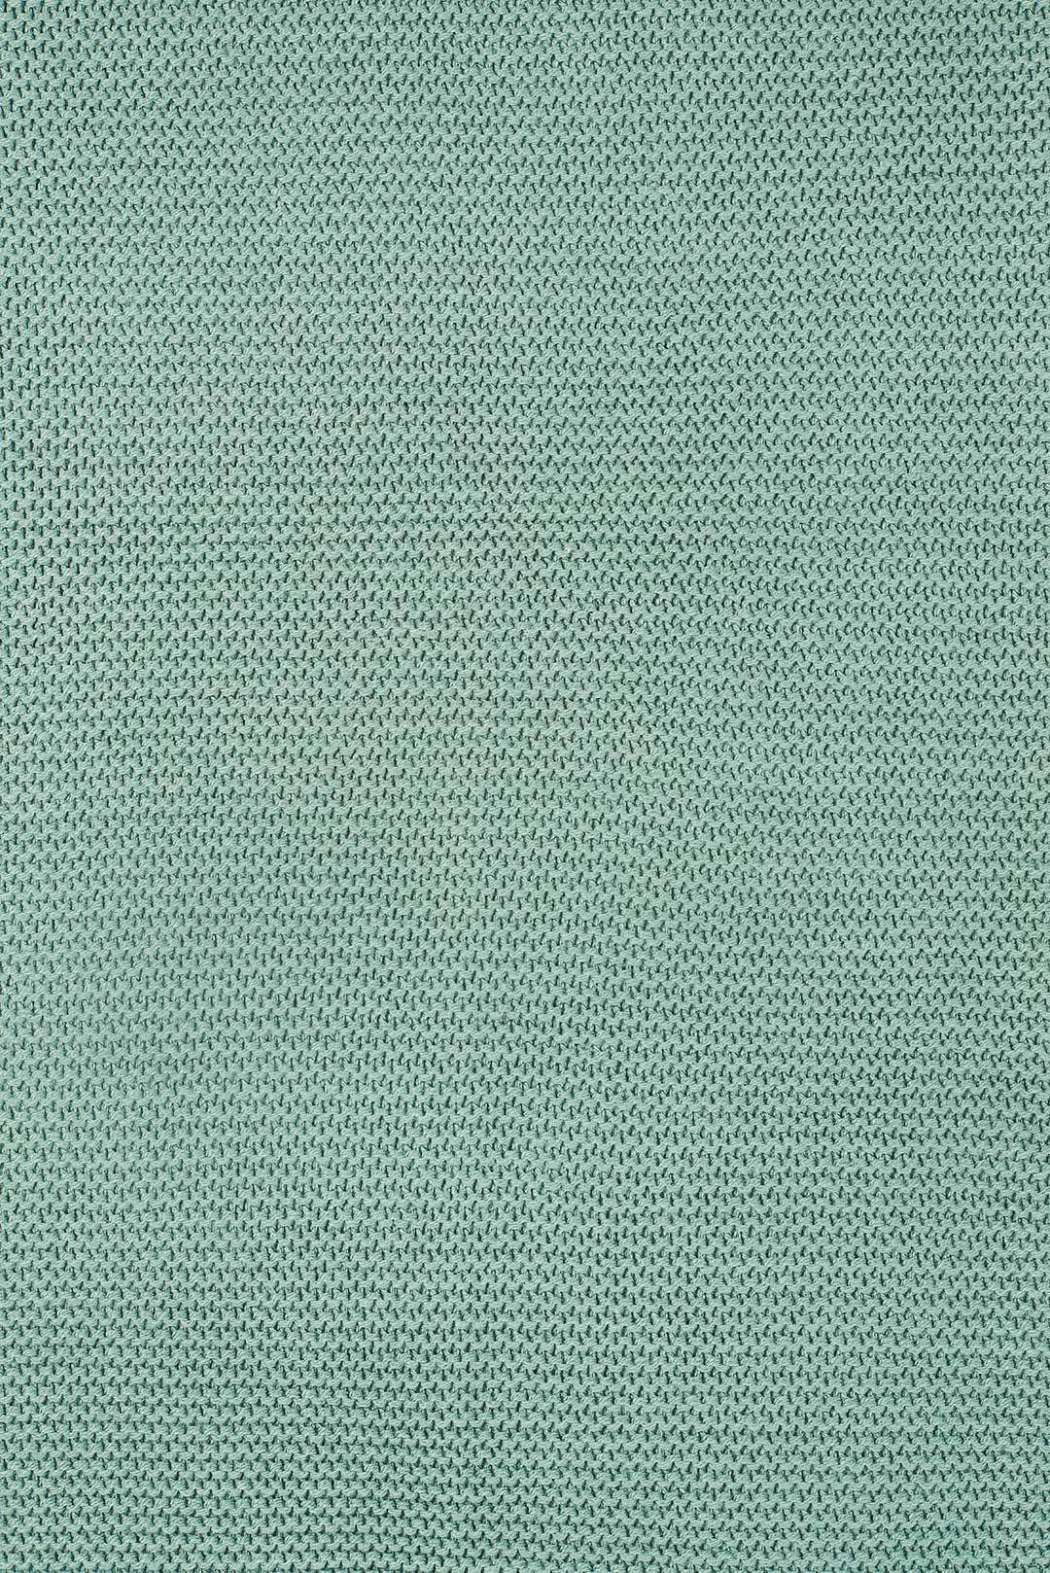 Deken_75x100cm_Basic_knit_forest_green_detail_852e4eb8-377a-42b1-8e03-51ba8267fee1